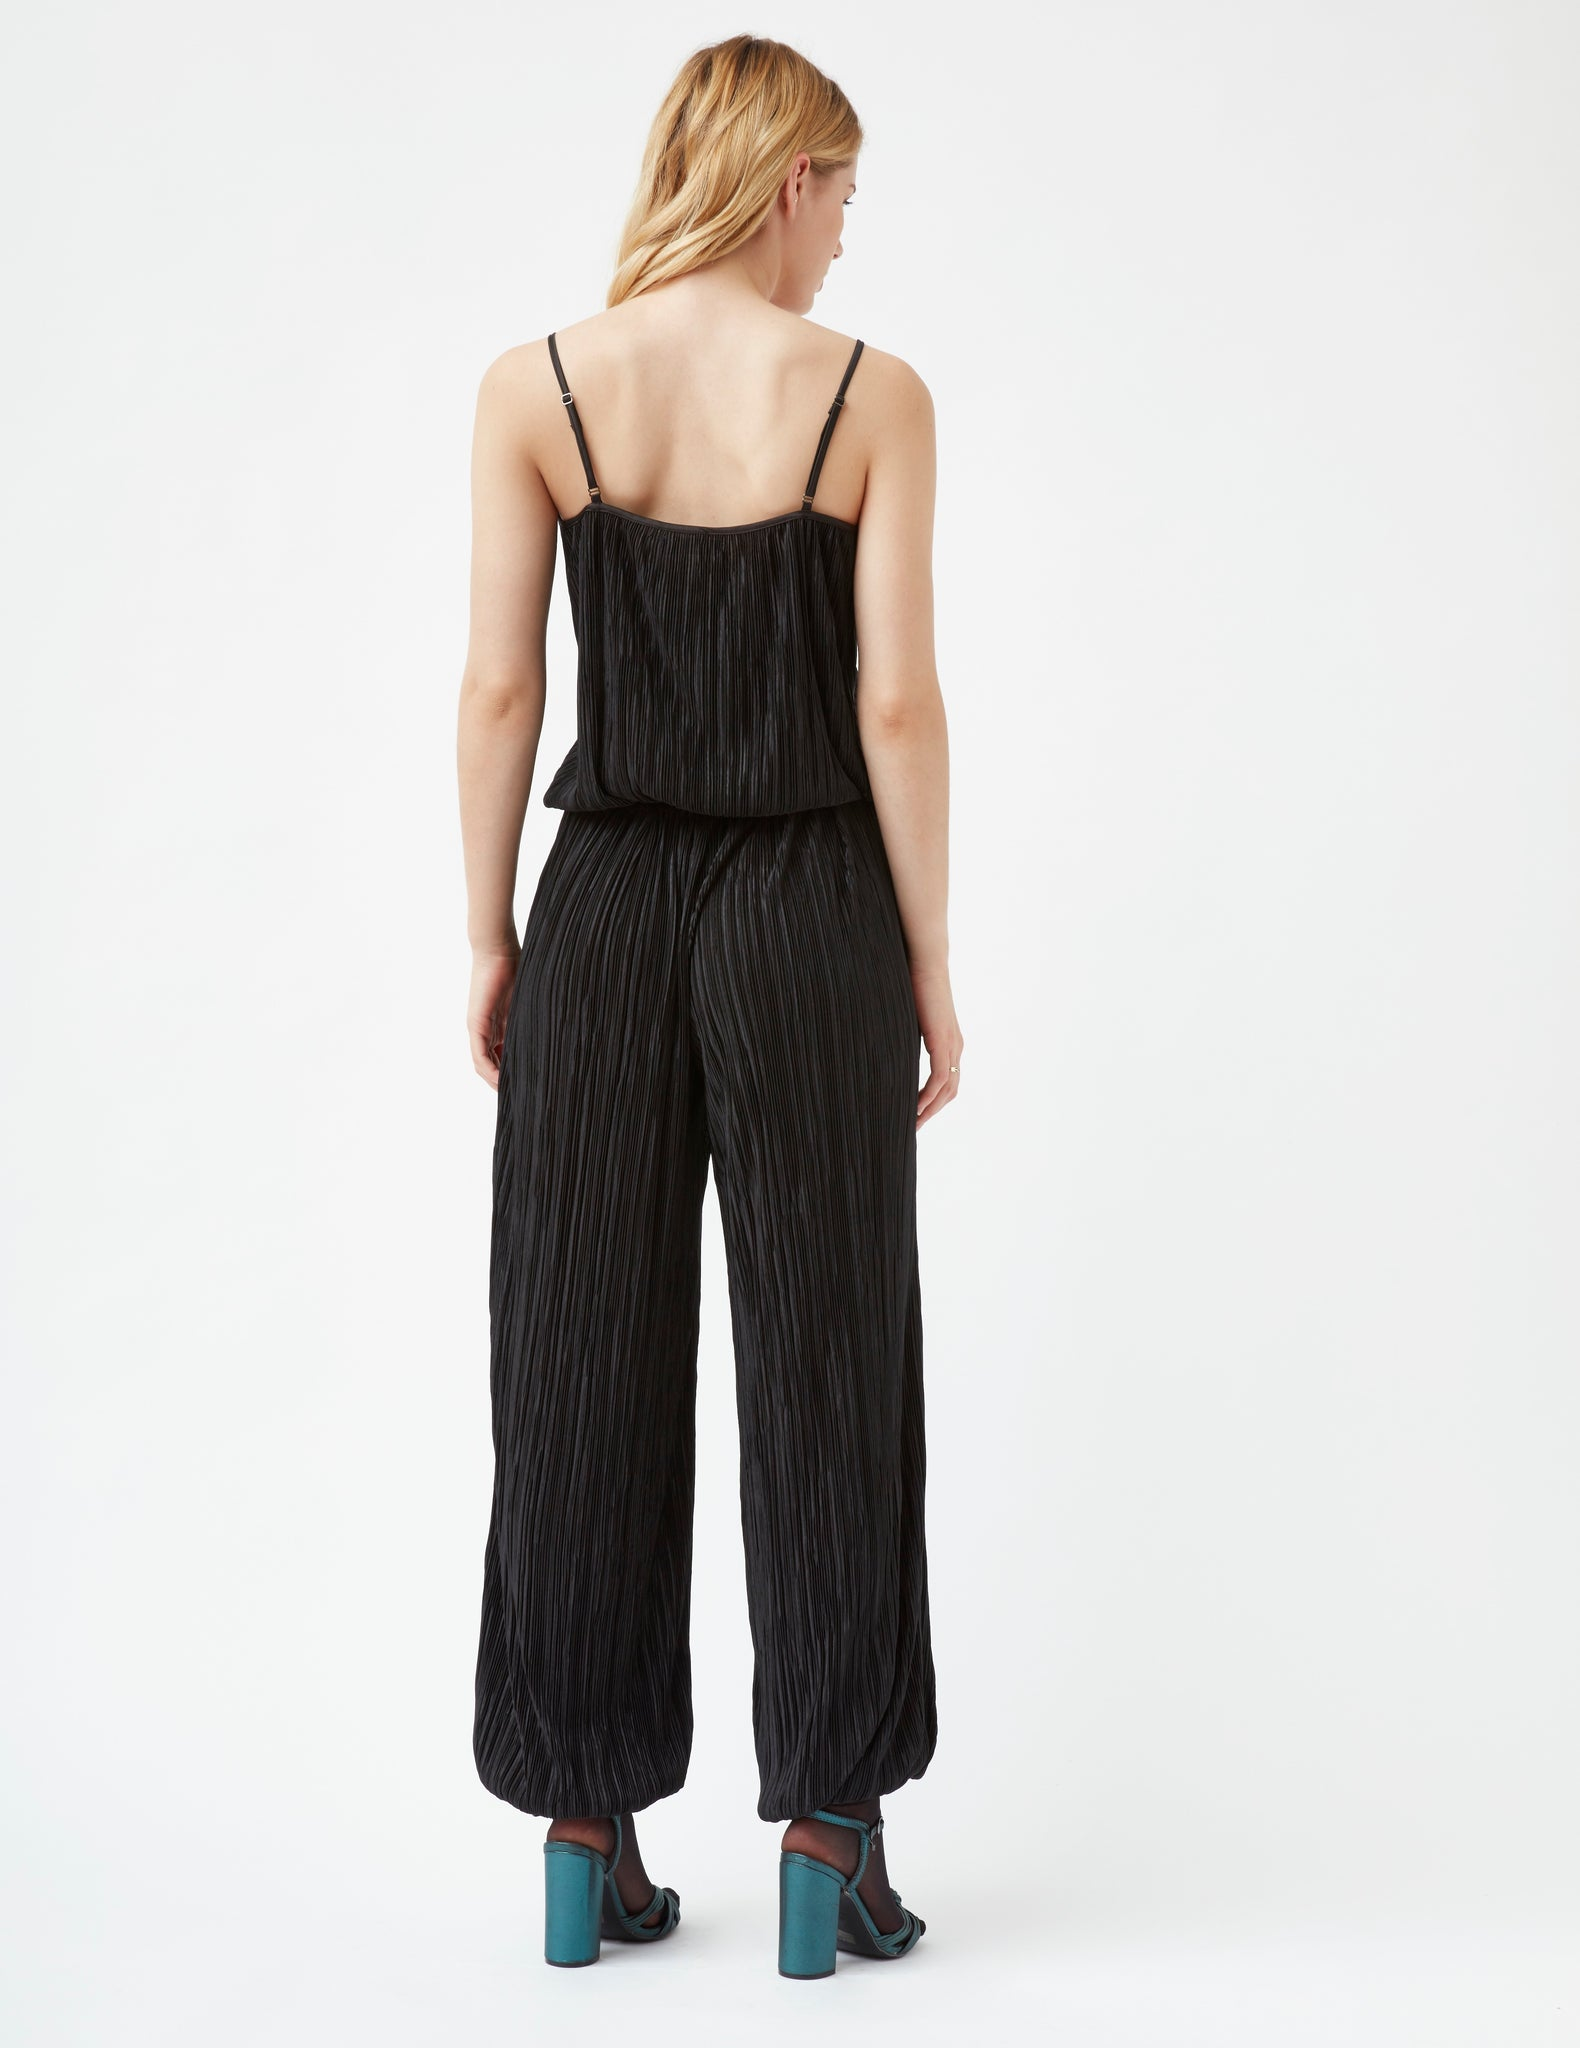 LOUNGE LIZARD LOVER - HAREM JUMPSUIT